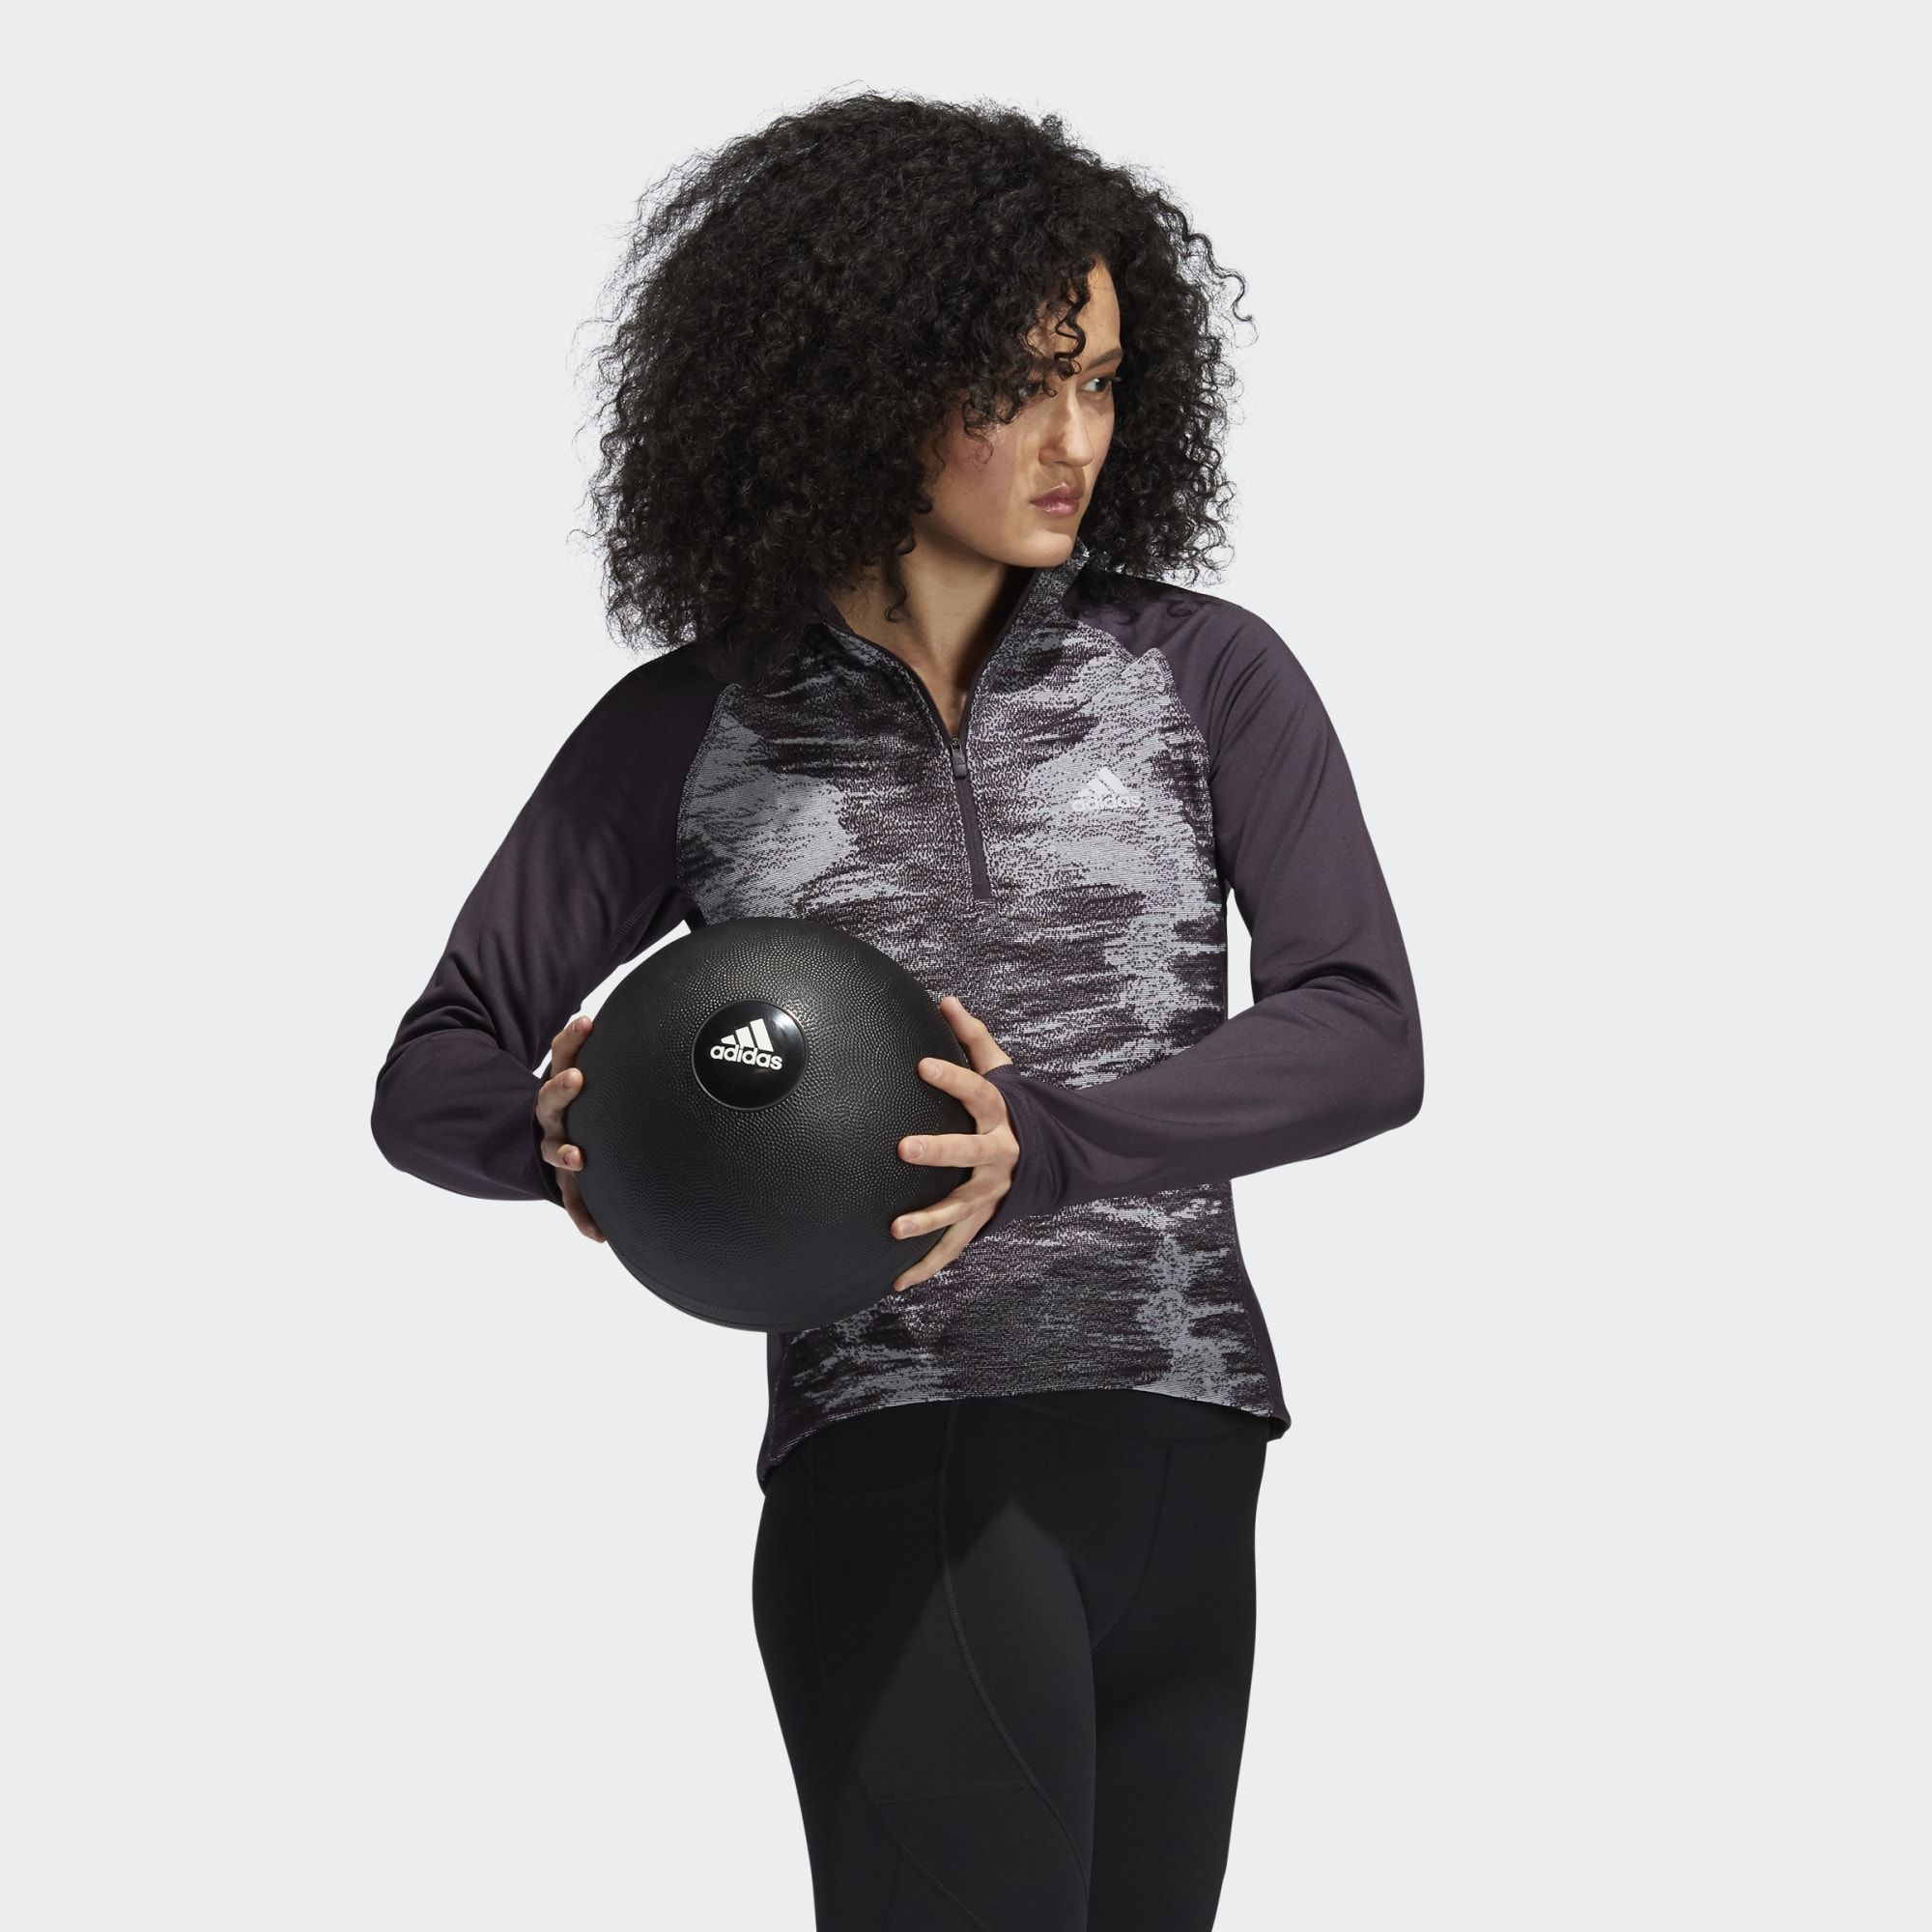 Adidas Women's Training Gear – Get Up and Get Working